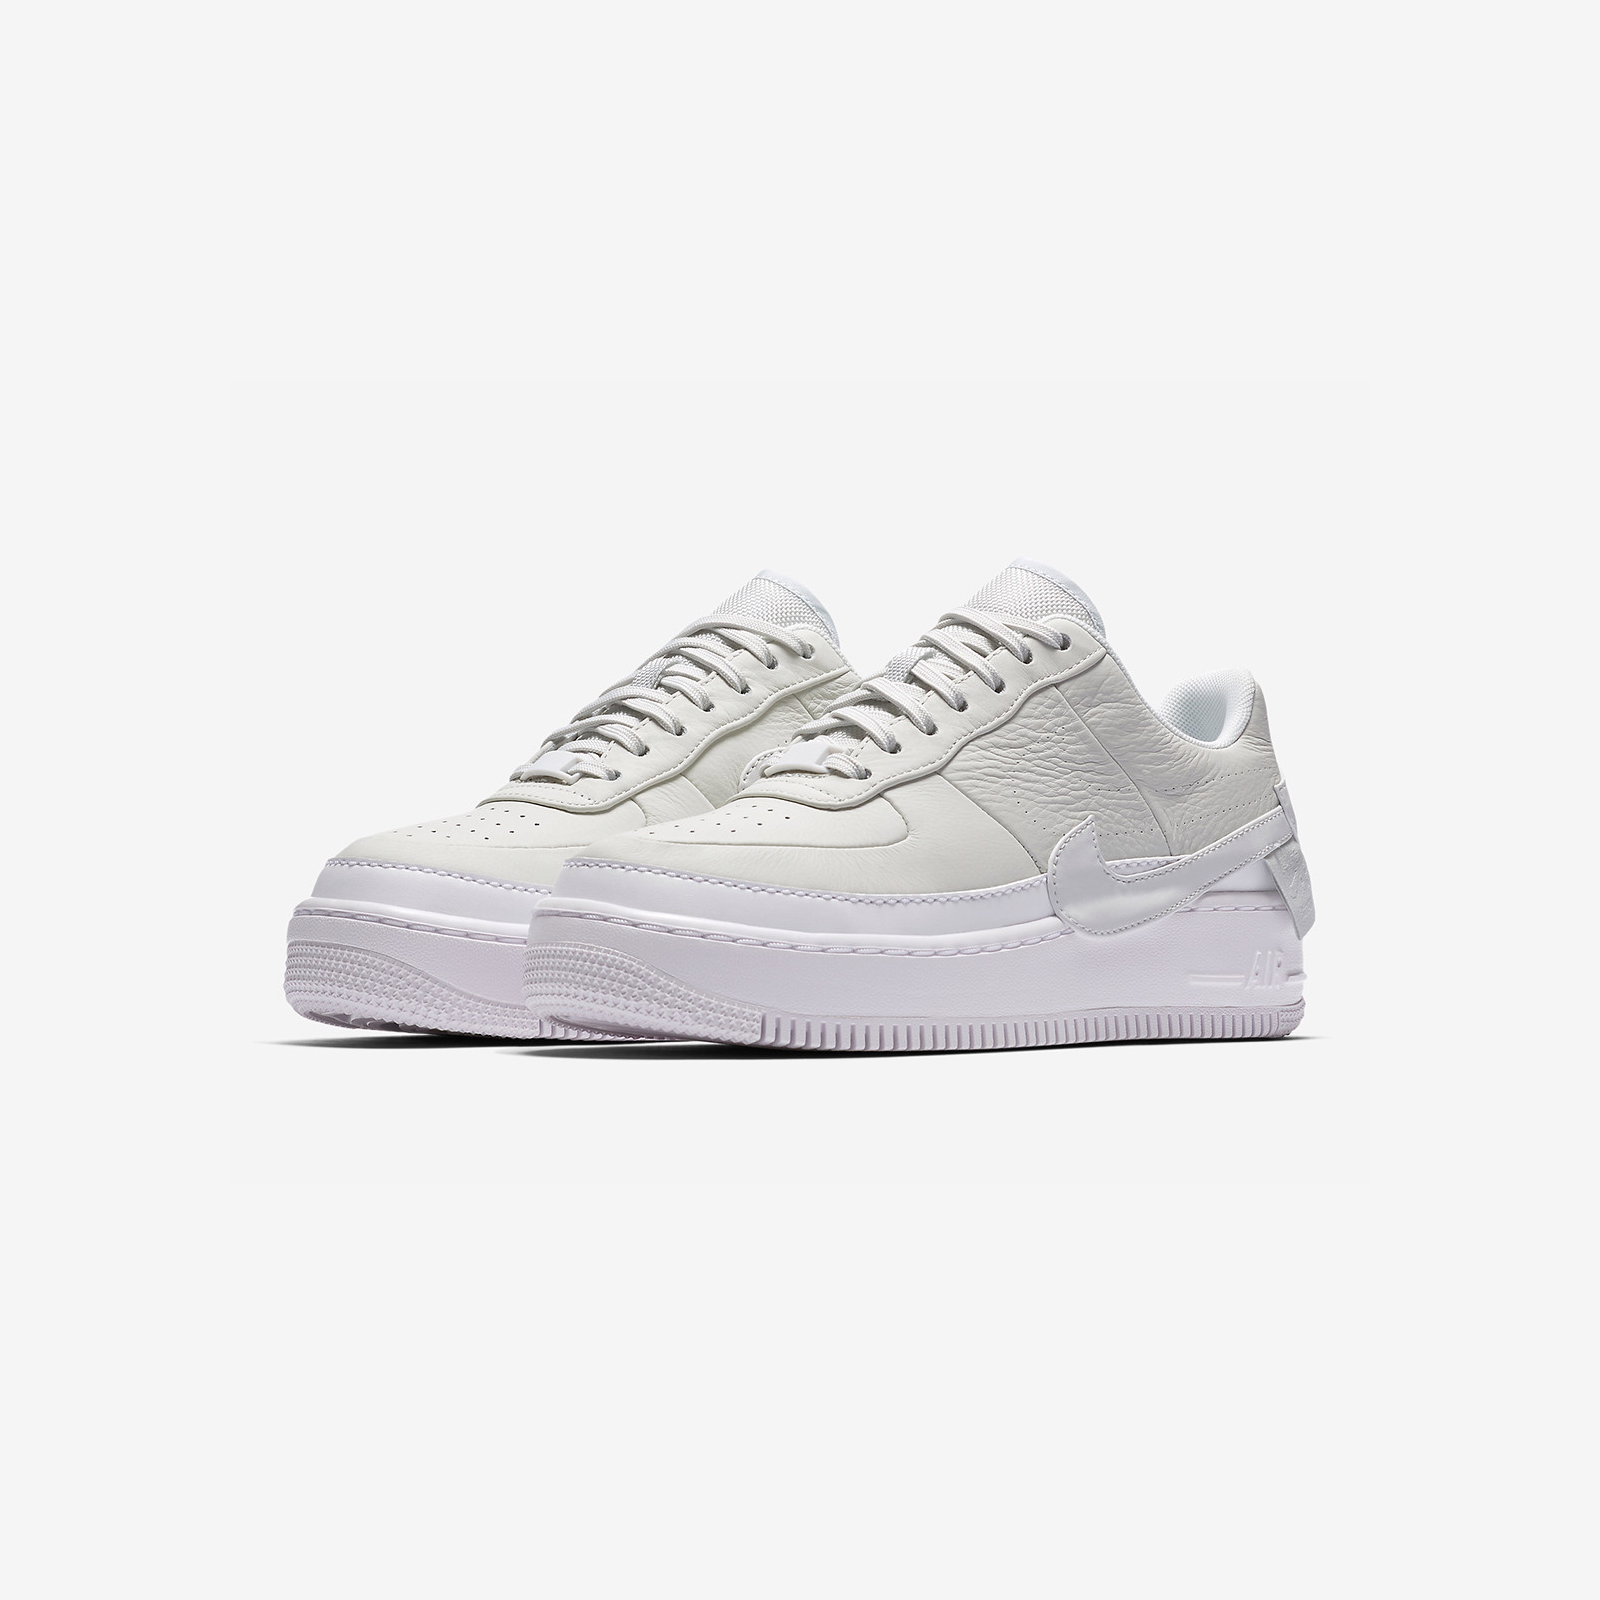 3517bc7f8a Nike Wmns Air Force Jester XX THE 1, REIMAGINED - Ao1220-100 ...